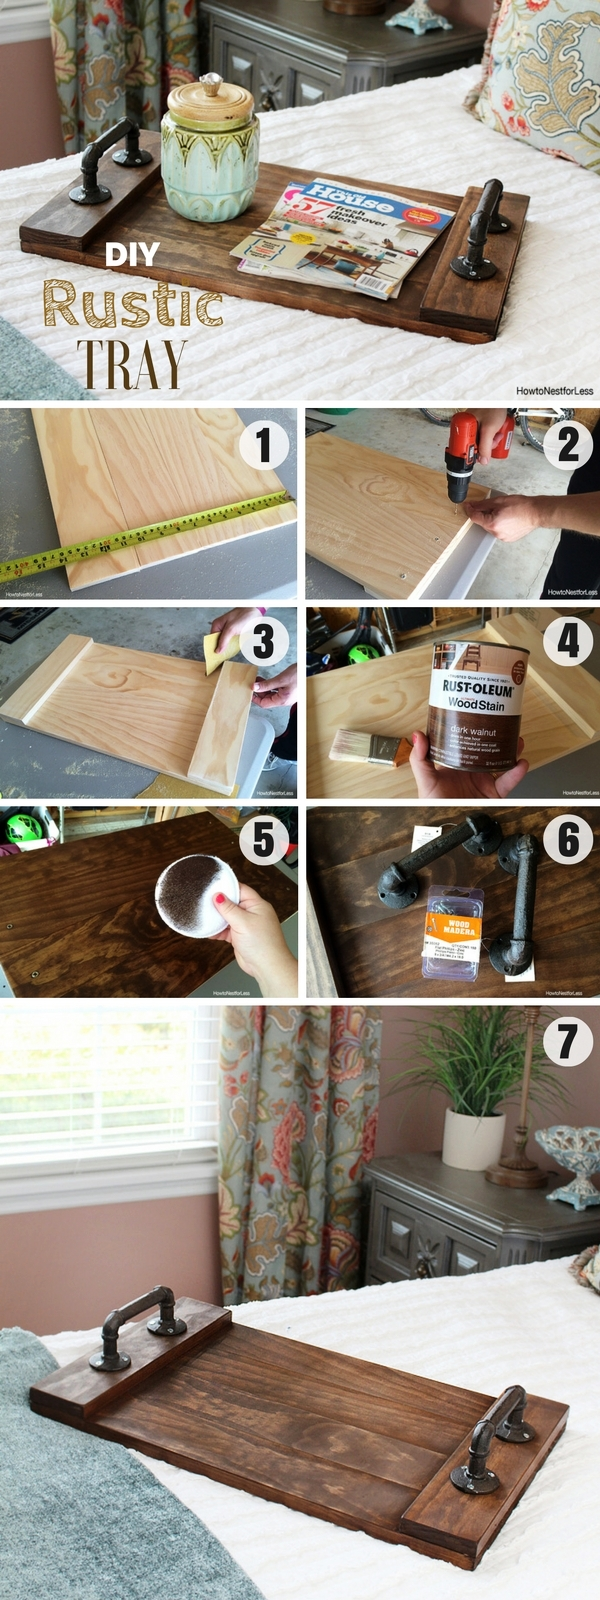 17 Awesome DIY Wood Craft Ideas For House Design